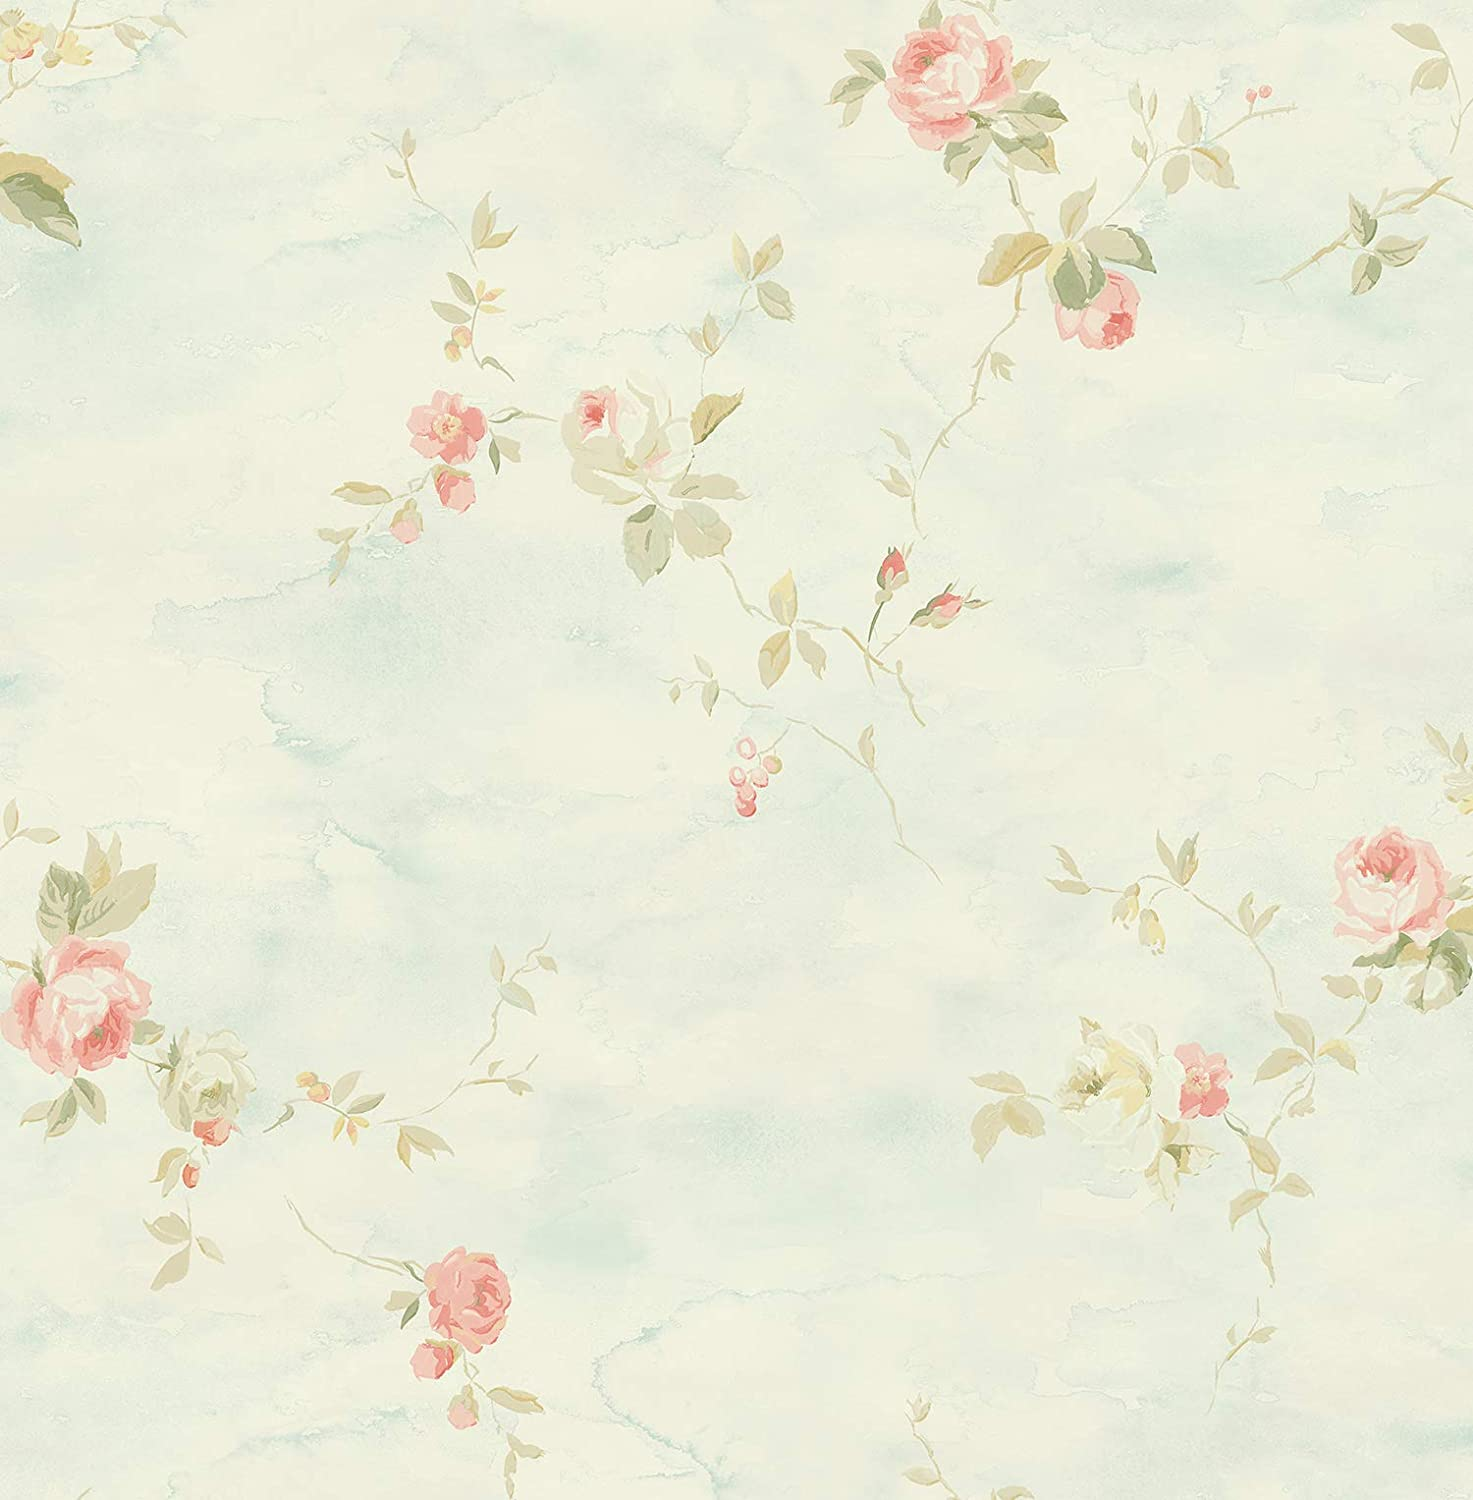 Blue Floral Wallpaper Chinoiserie Wallpaper Rose Wallpaper Vintage